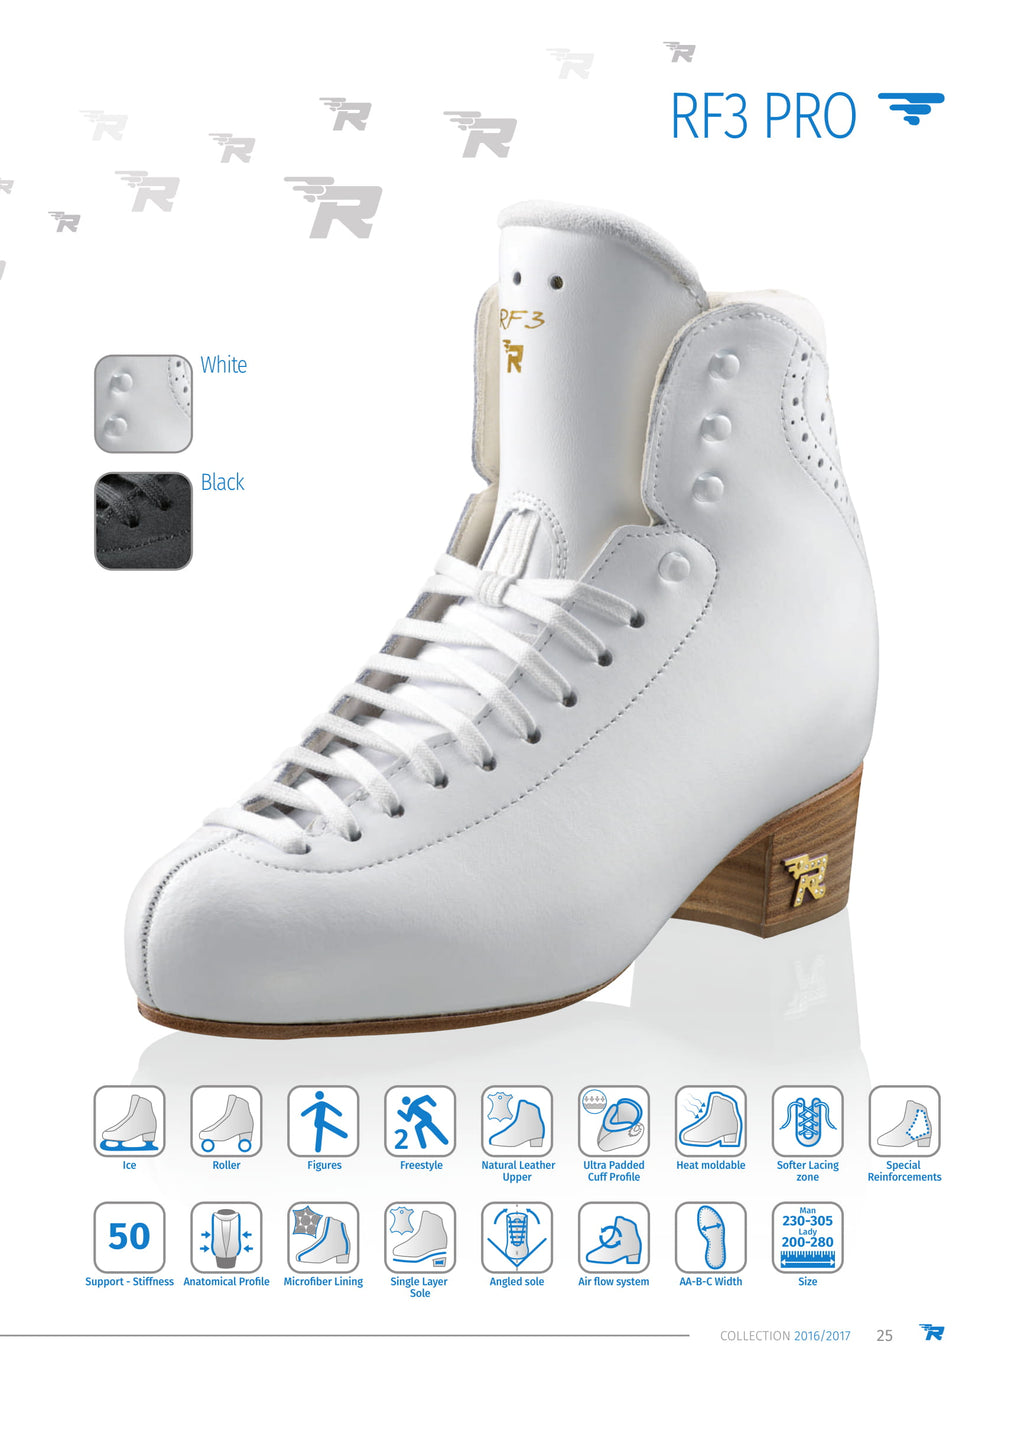 Risport Figure Skating Boots - RF3 Pro - House of Skates